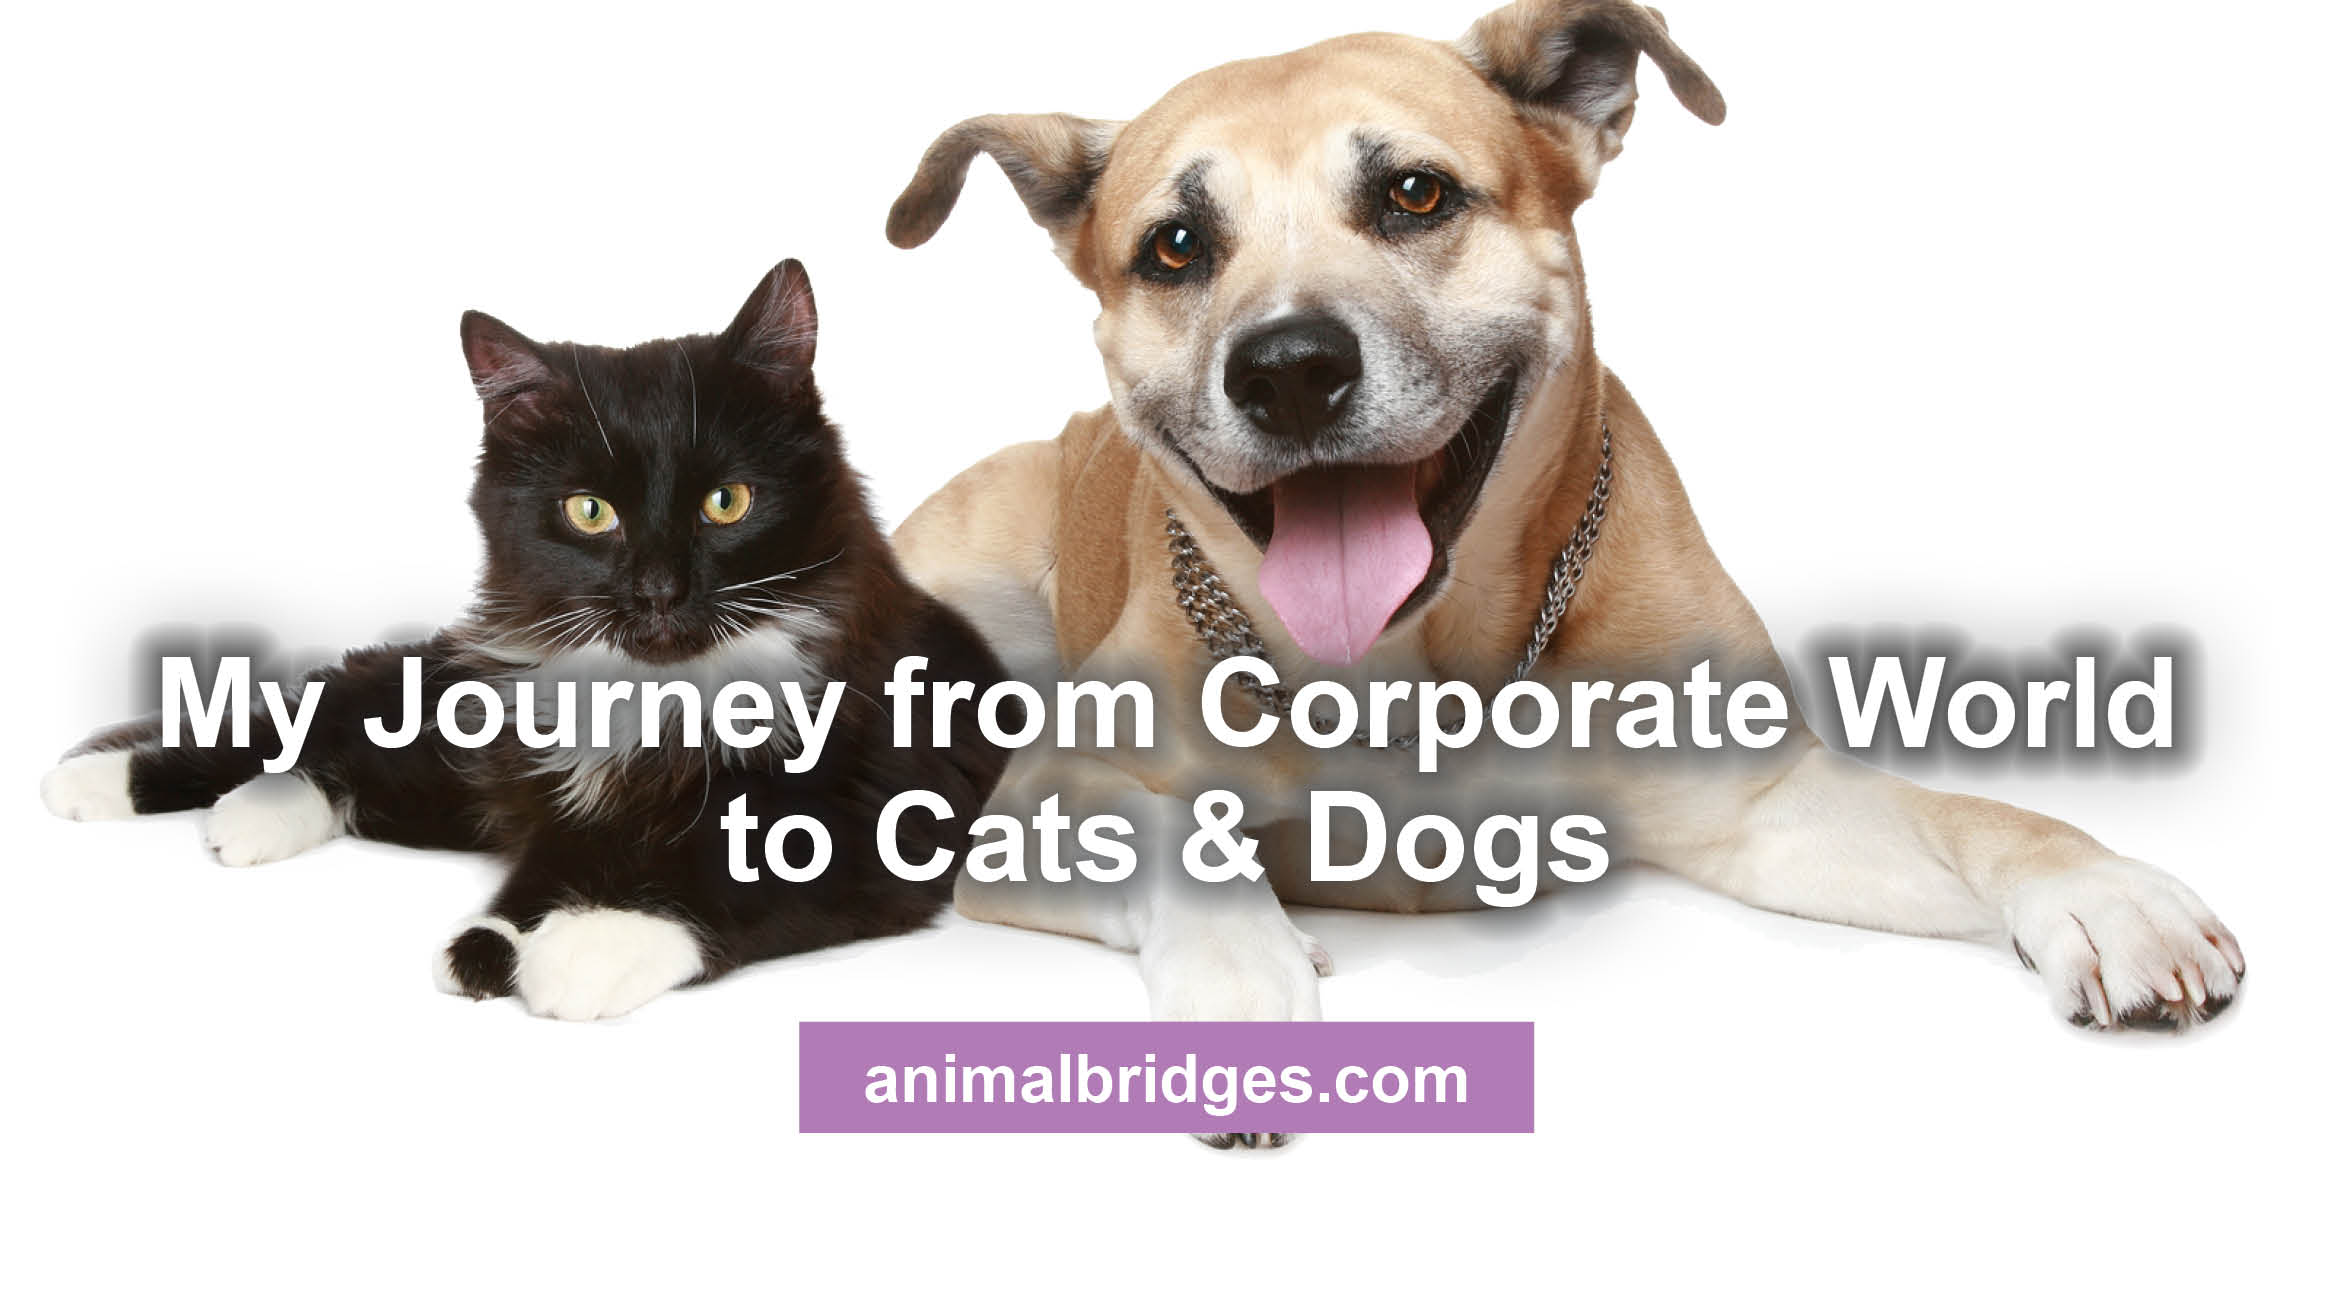 My Journey from Corporate World to Cats & Dogs